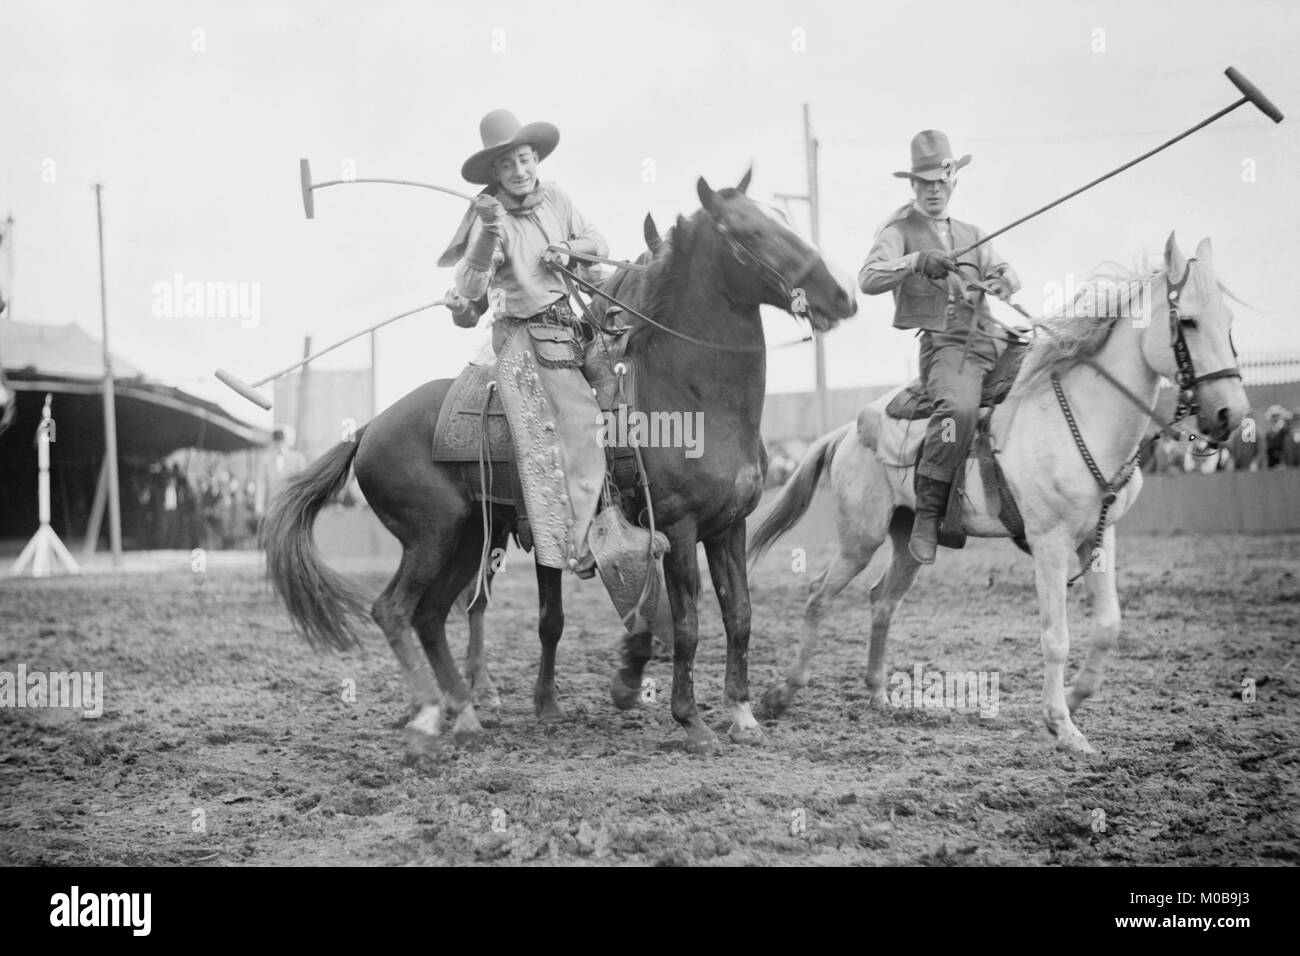 Wild West Polo Played by Cowboys on Horses at Coney Island - Stock Image